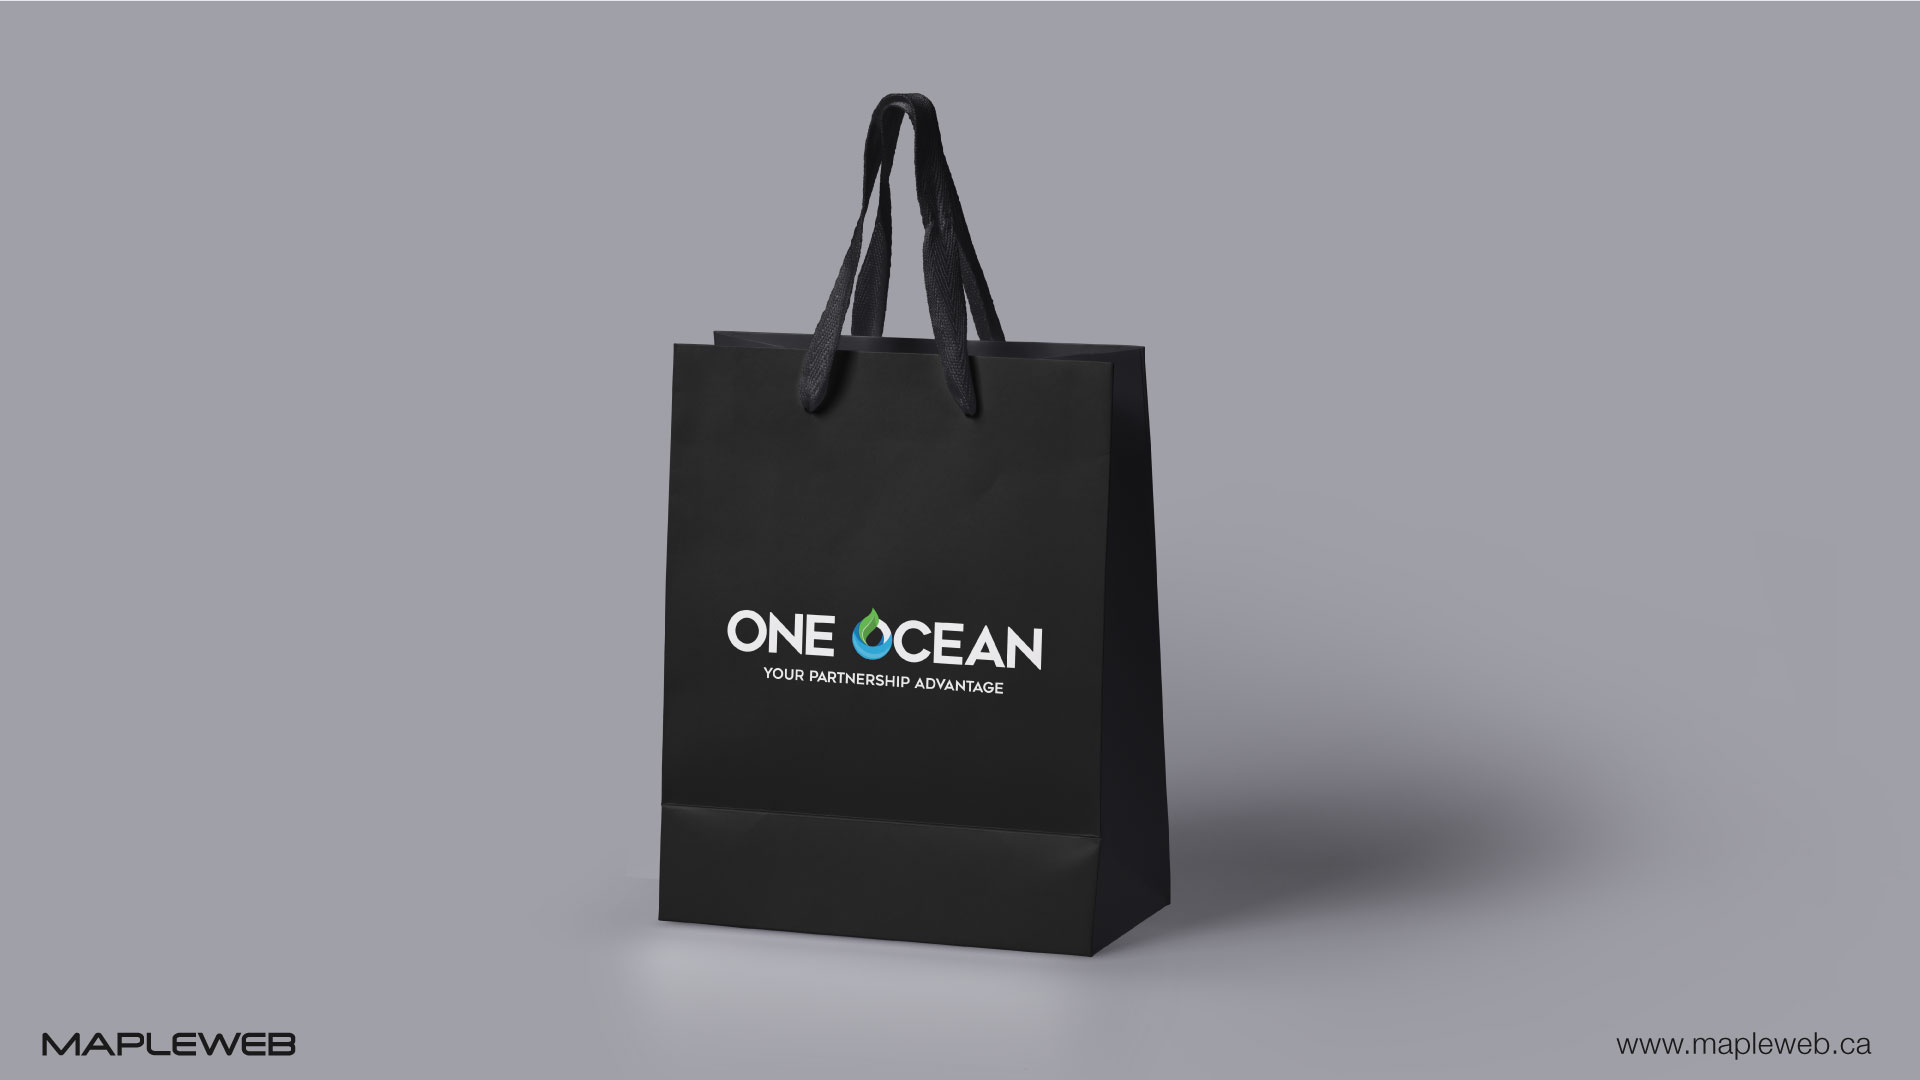 one-ocean-brand-logo-design-by-mapleweb-vancouver-canada-white-paper-bag-mock